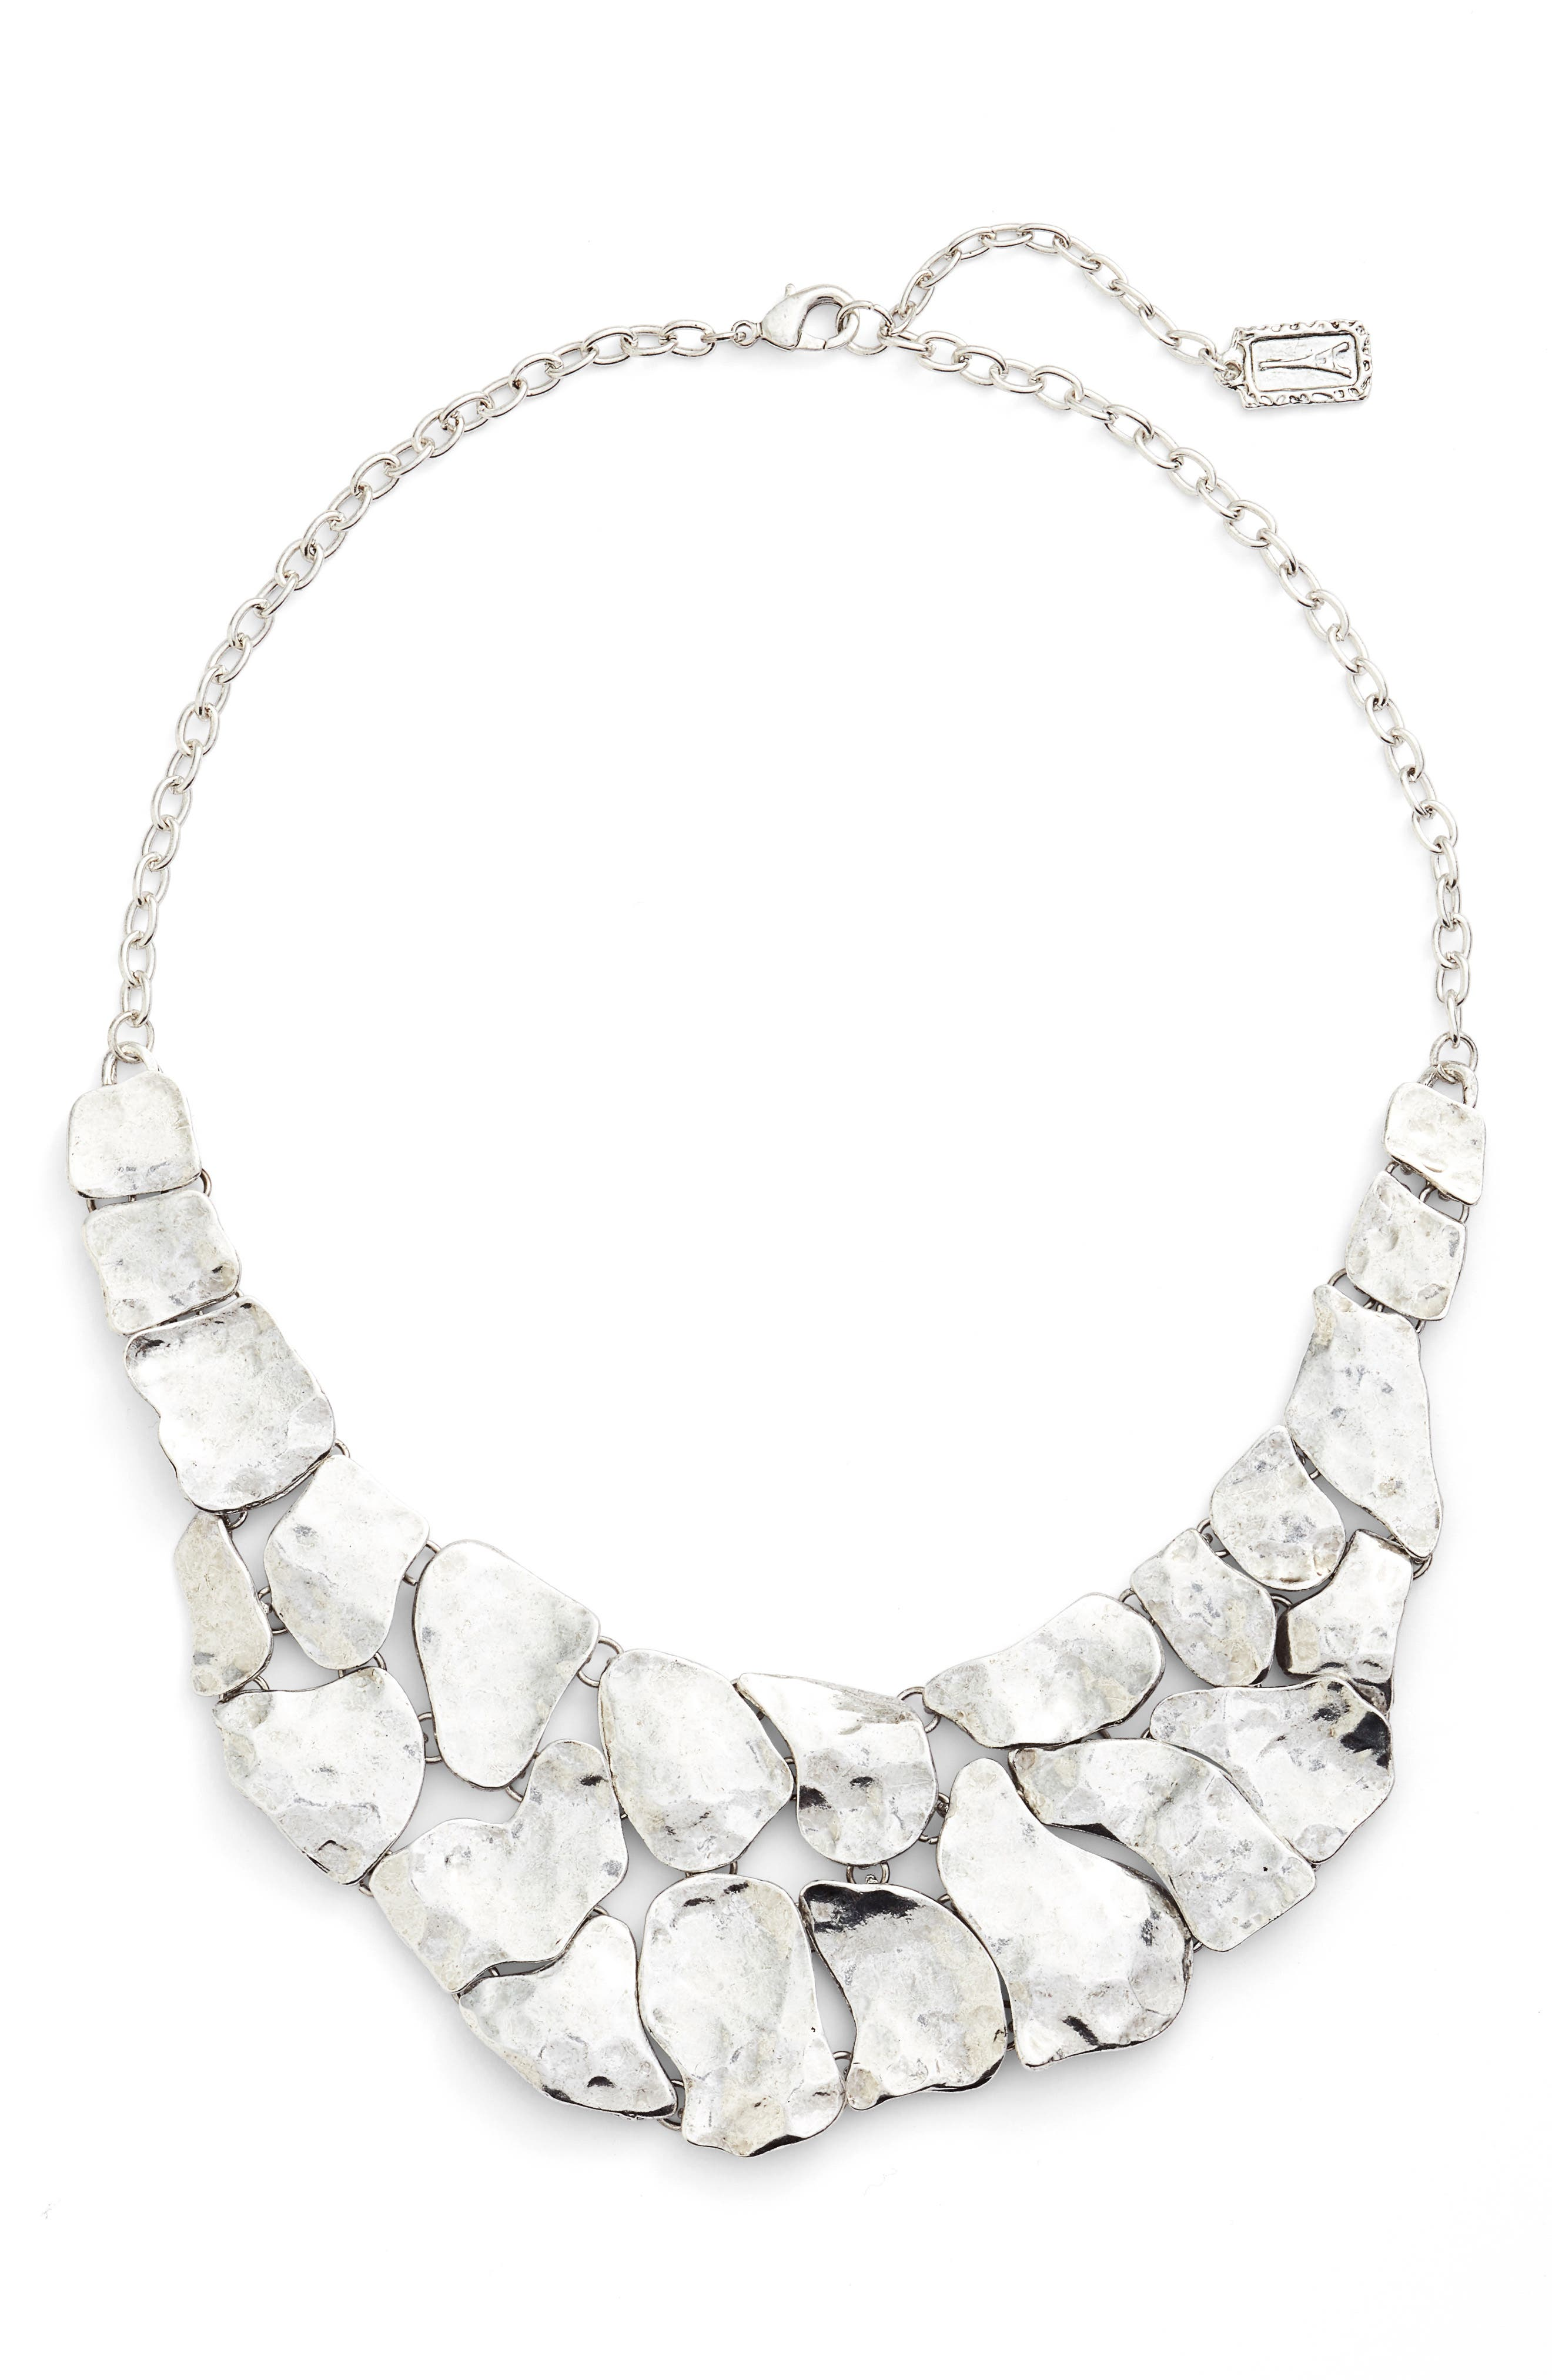 KARINE SULTAN Alice Statement Necklace, Main, color, SILVER